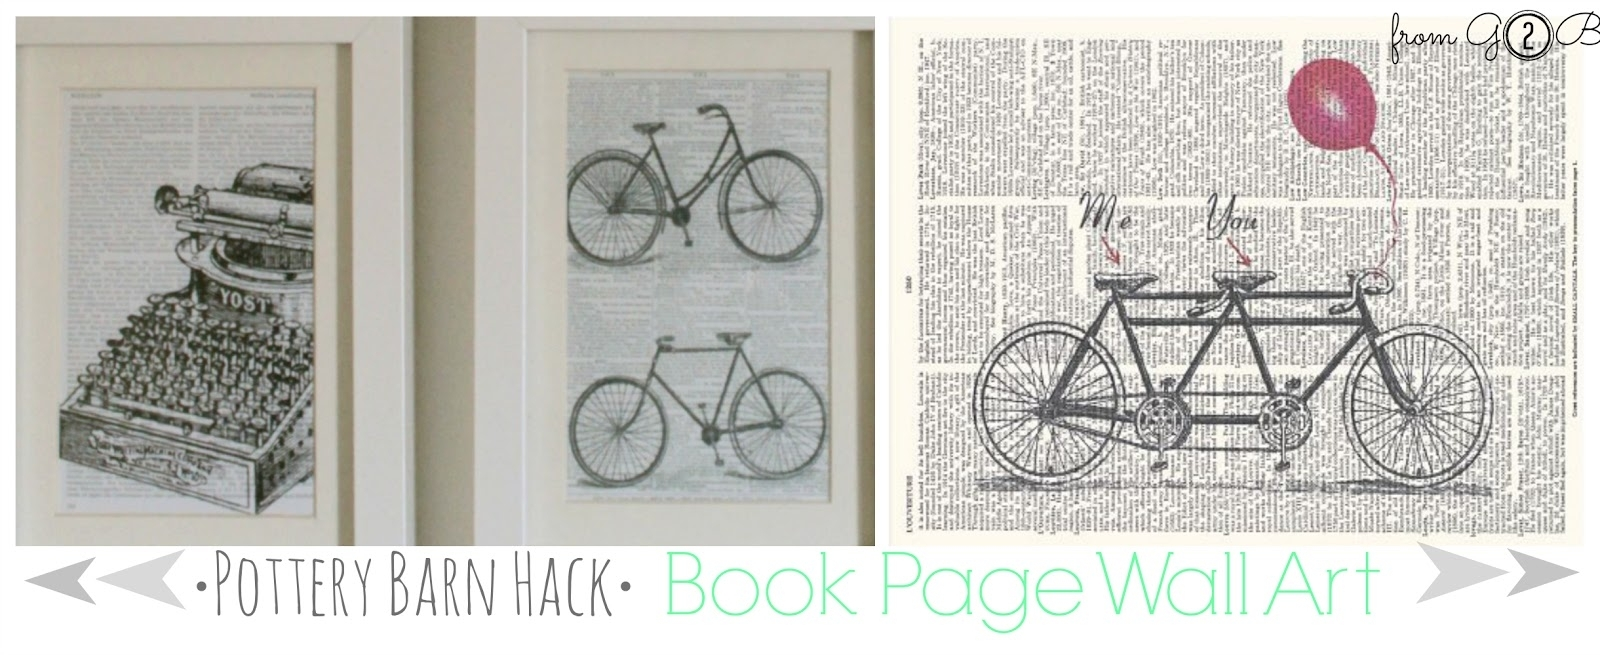 From Gardners 2 Bergers: [Pottery Barn Hack] Book Page Wall Art with regard to Pottery Barn Wall Art (Image 9 of 20)